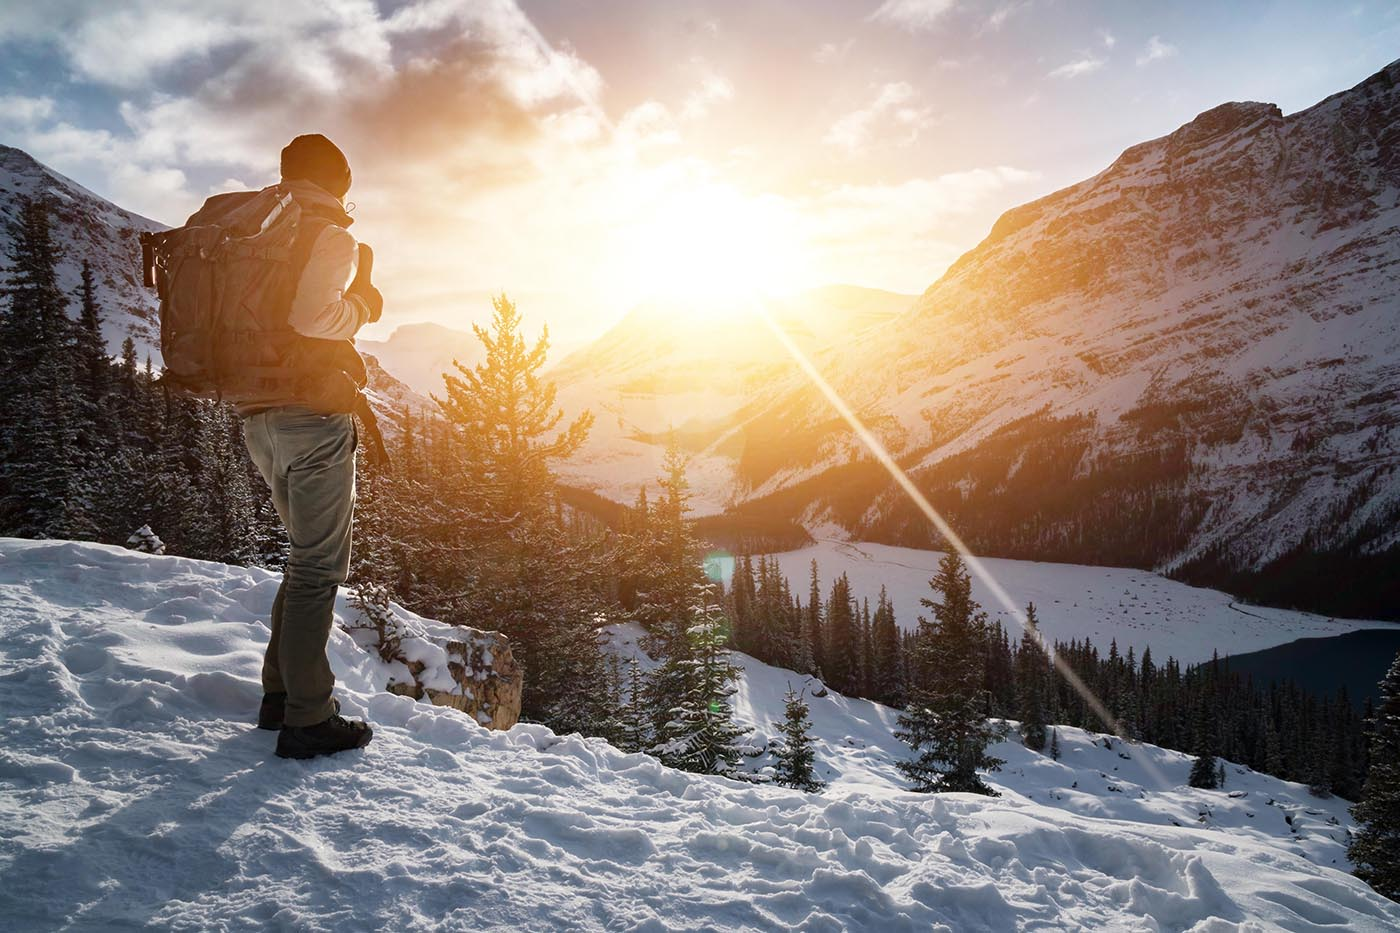 mountain hiker looks out over snowy mountains